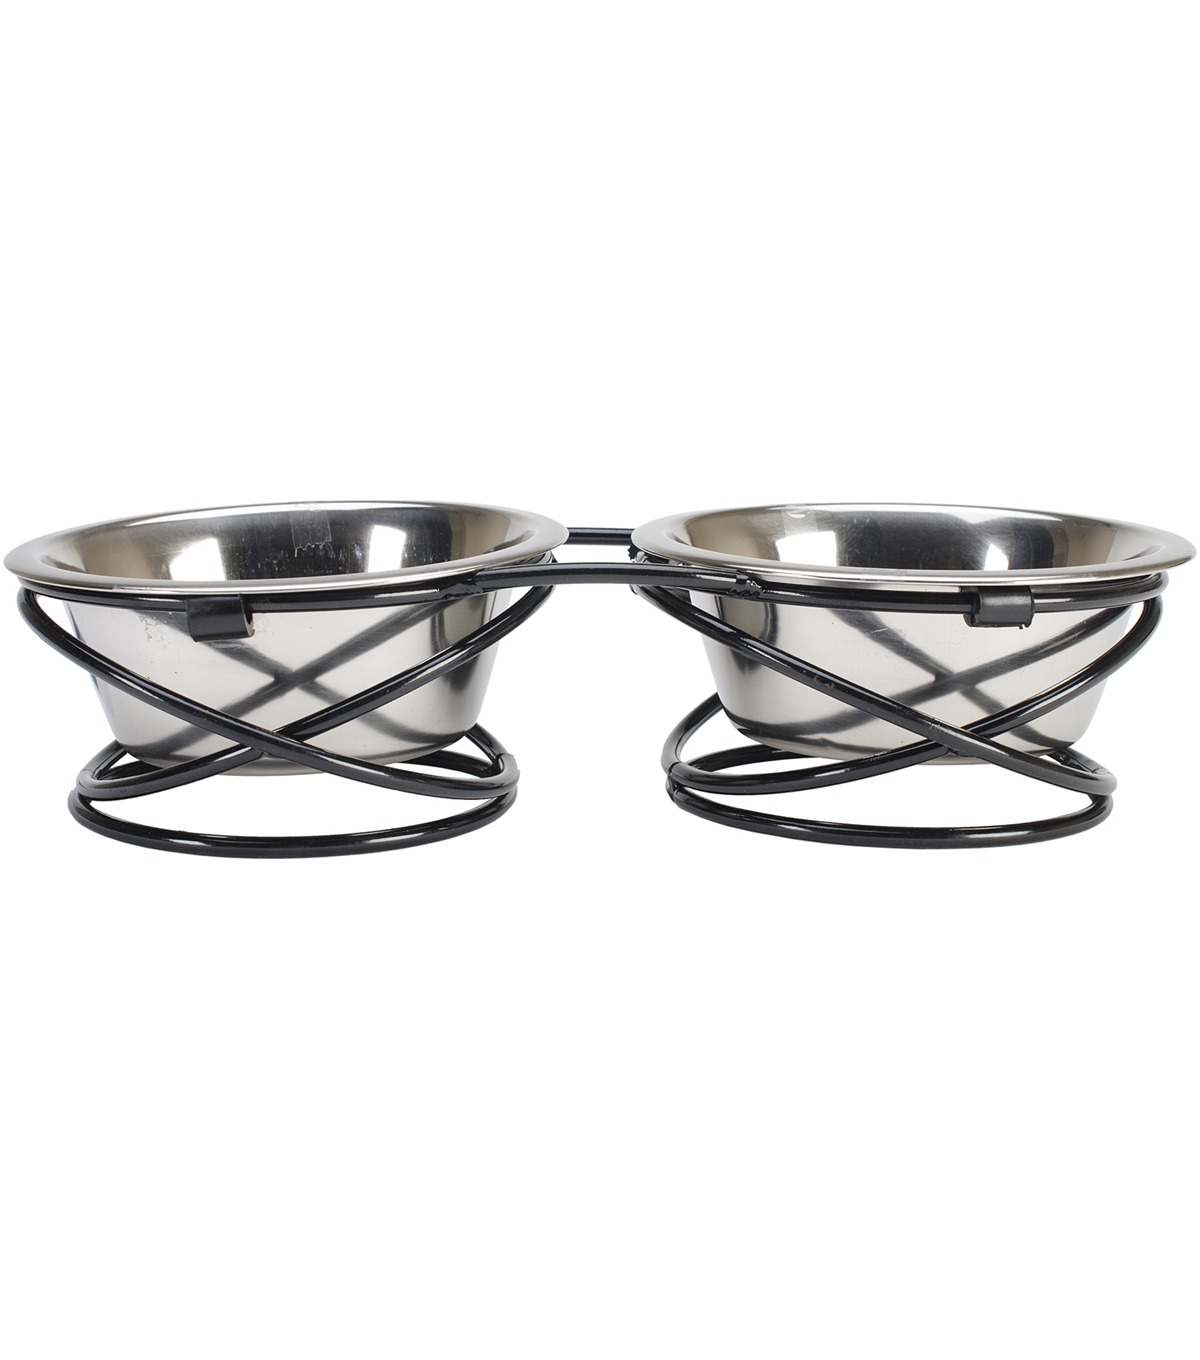 Buddy\u0027s Line Spring Style Double Diner Bowls